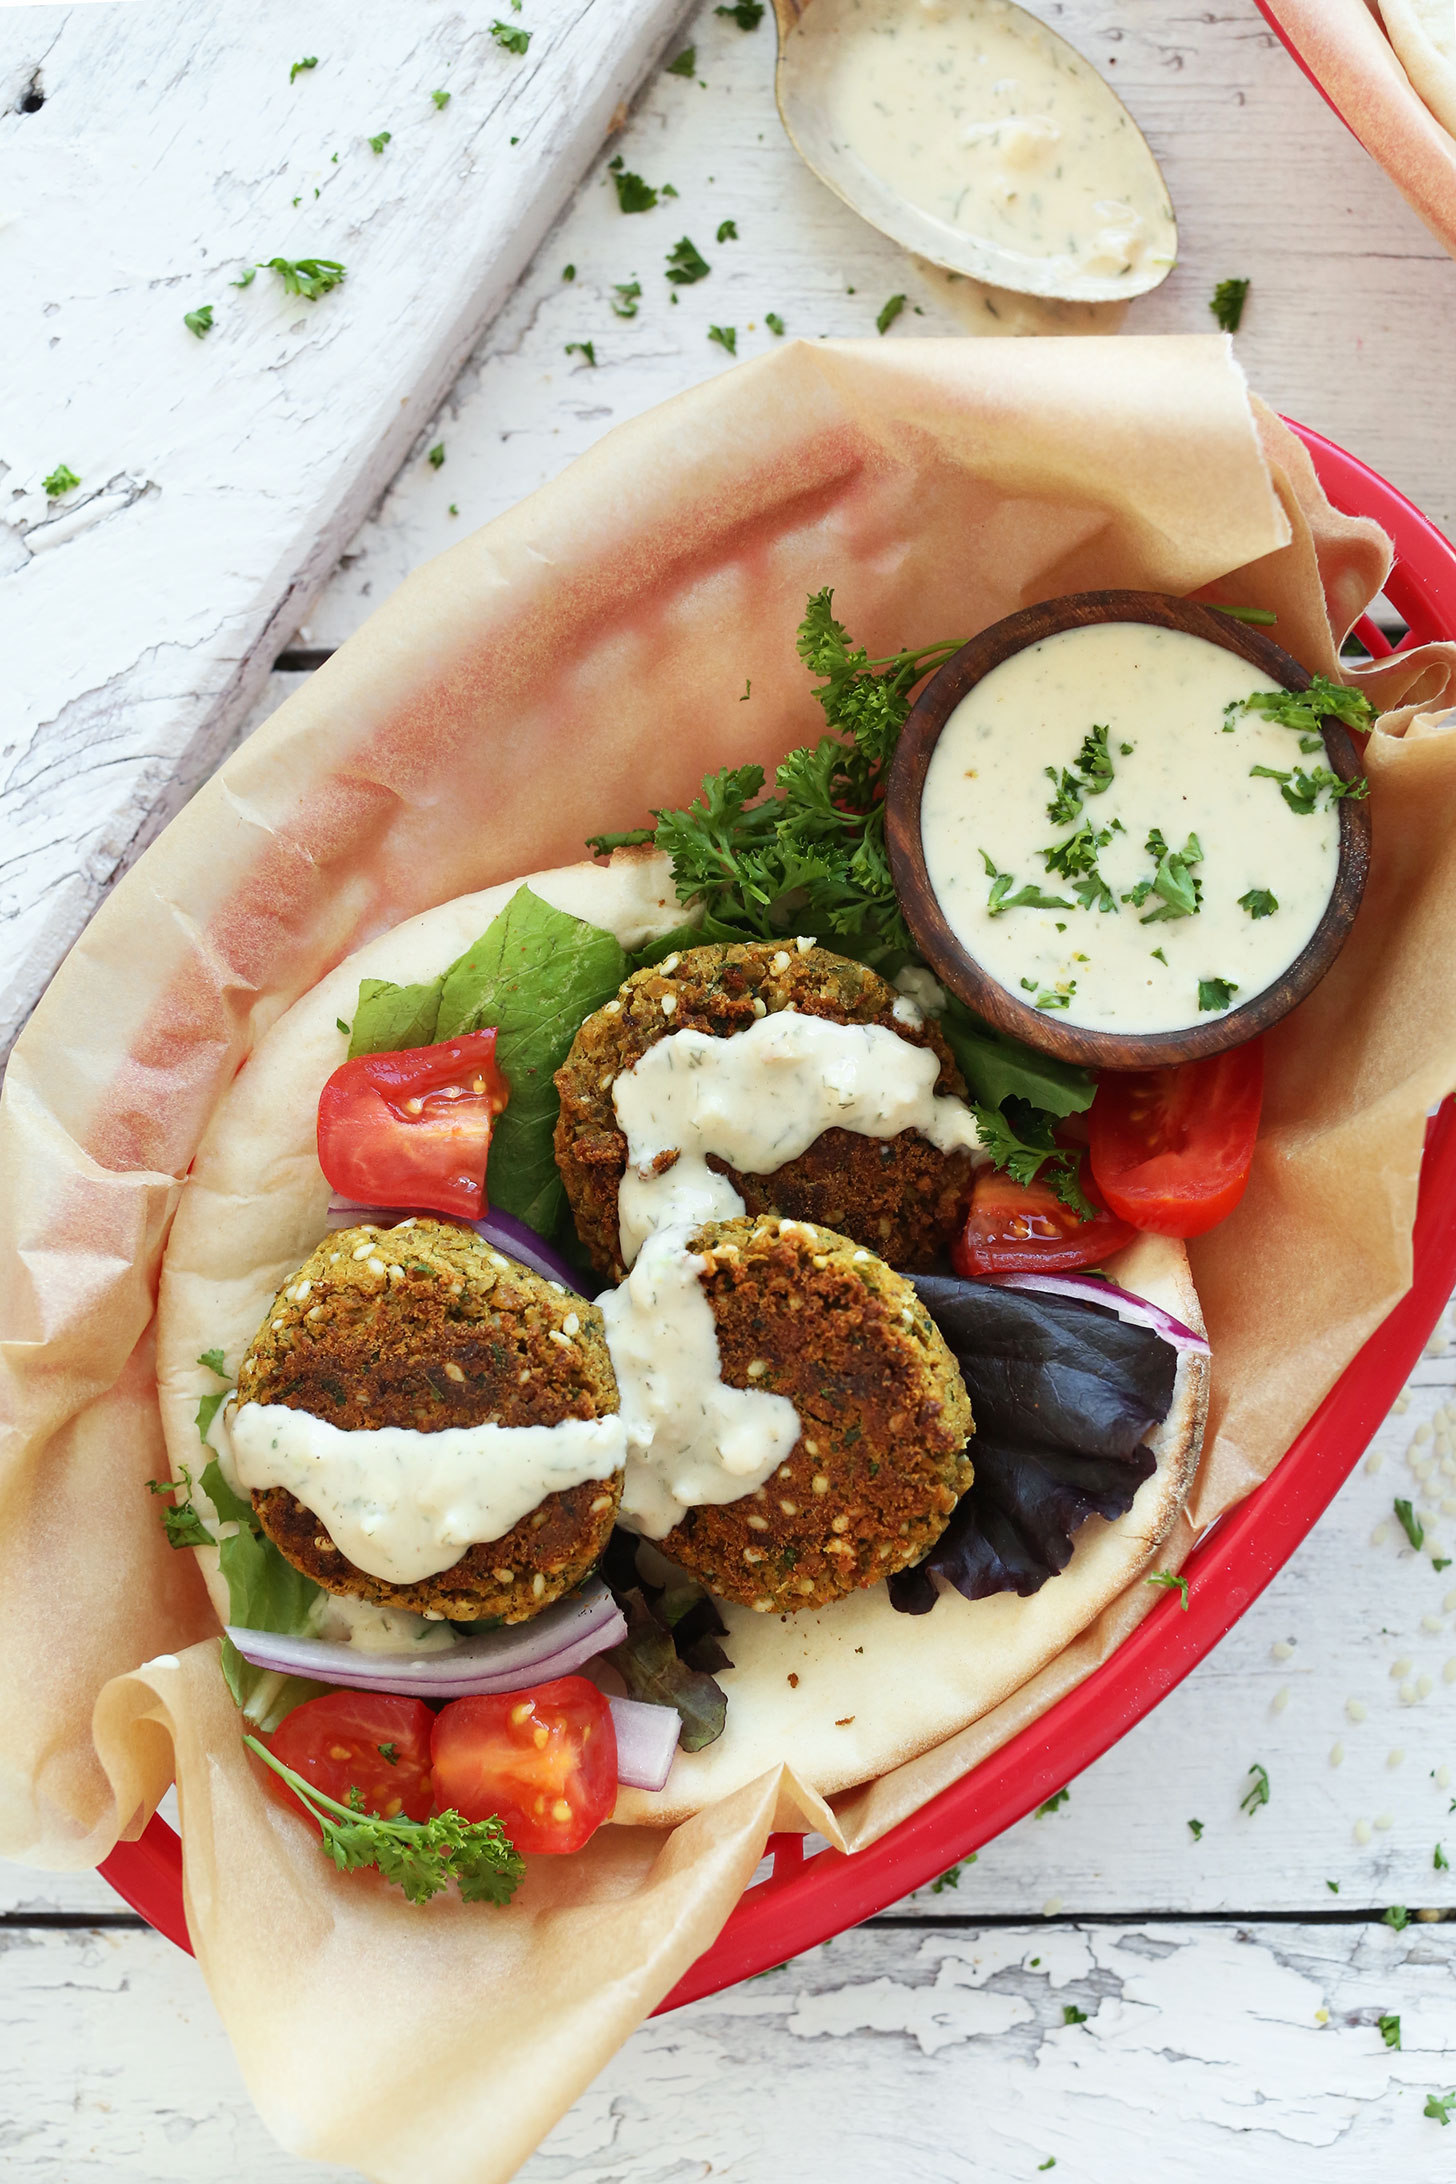 Basket filled with Vegan Falafel on pita bread with 4-ingredient dressing and fresh vegetables